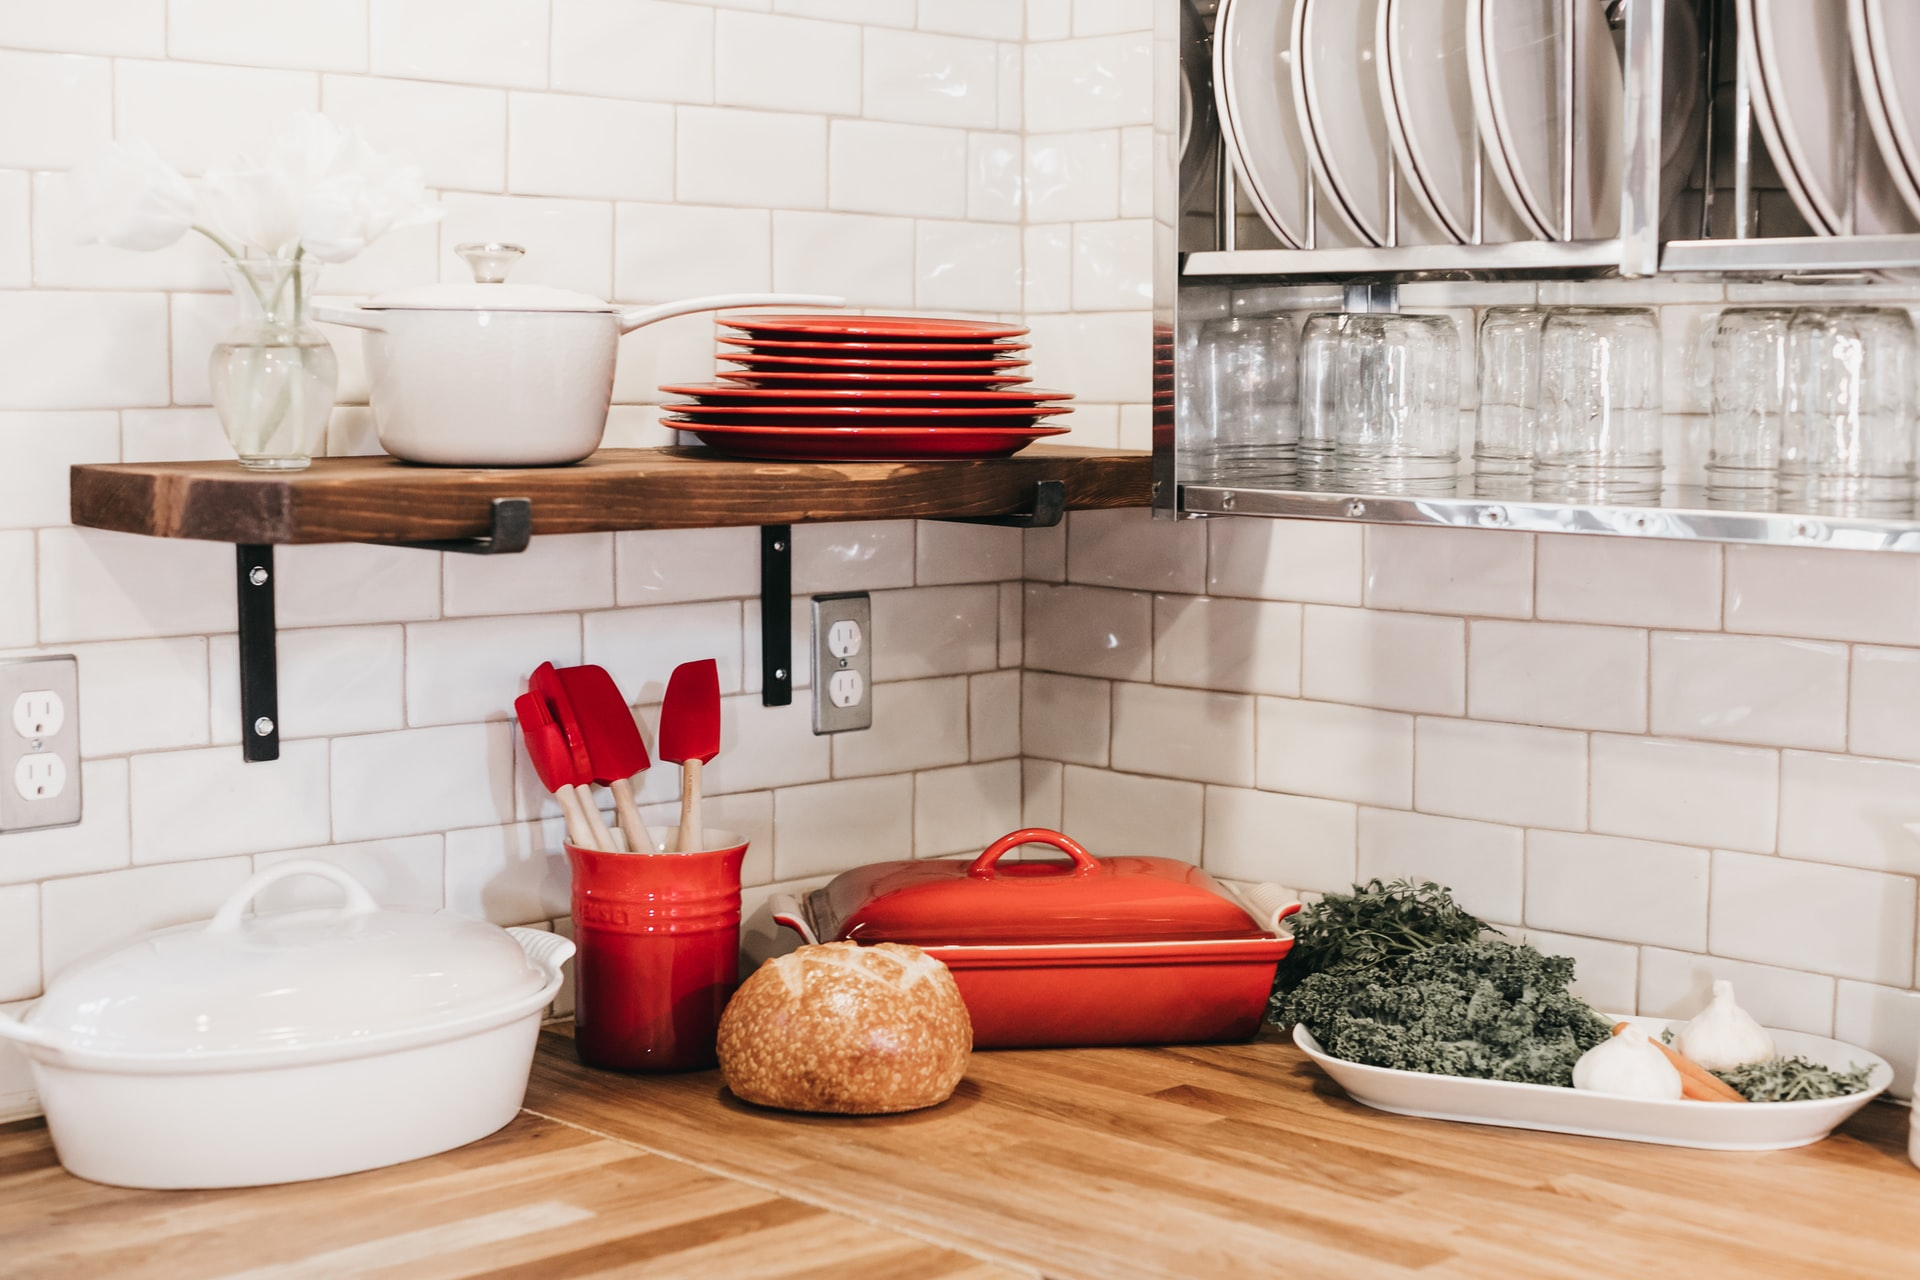 Choosing the right countertop for your kitchen, Zazzy Home